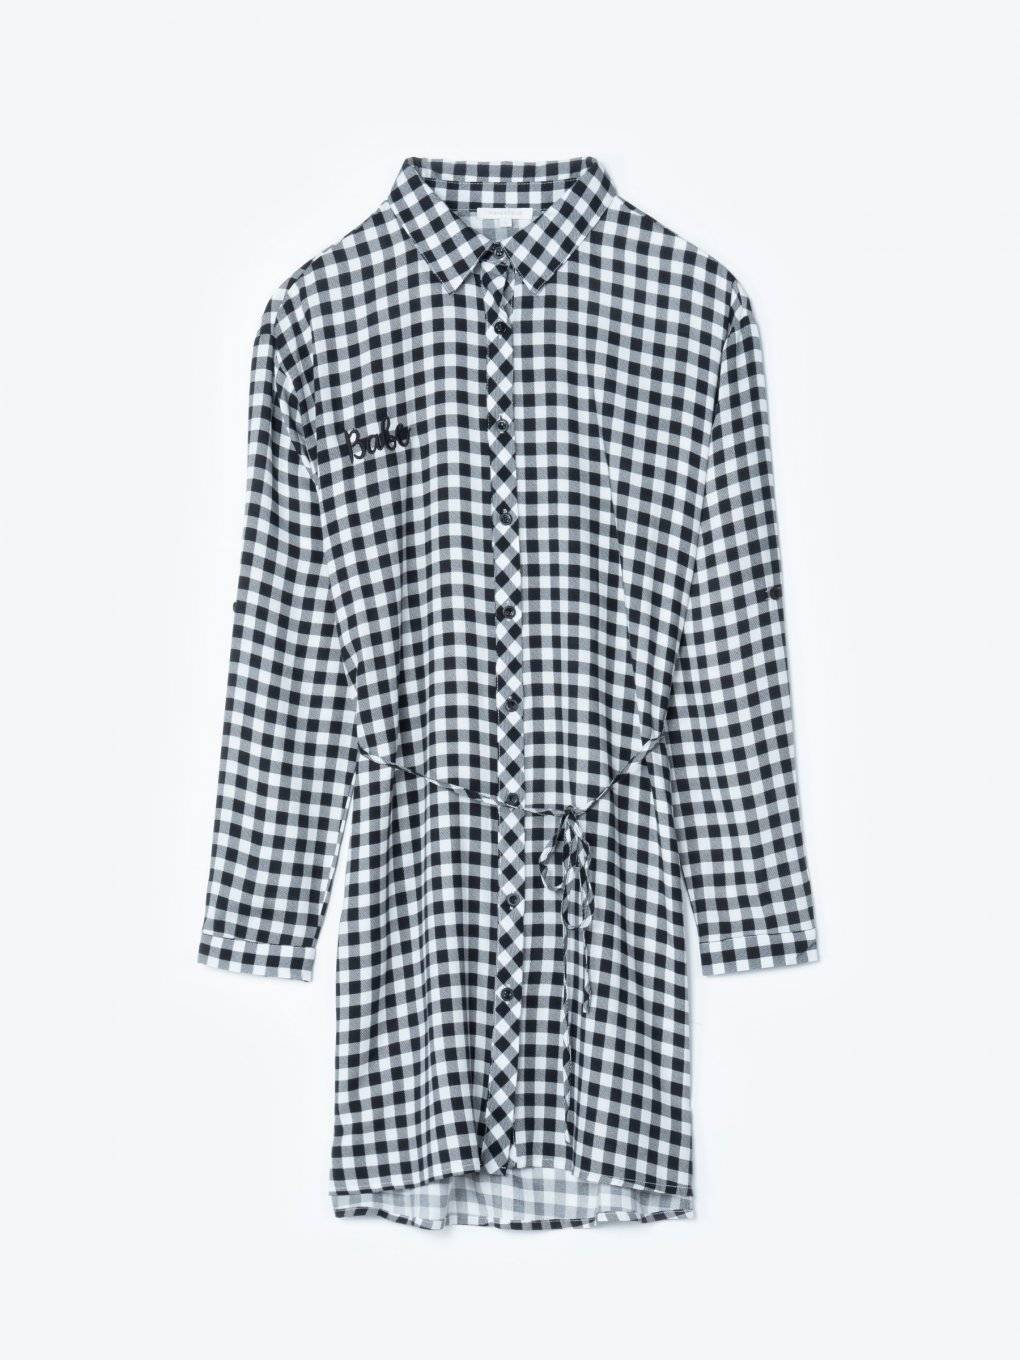 Longline gingham shirt with embroidery